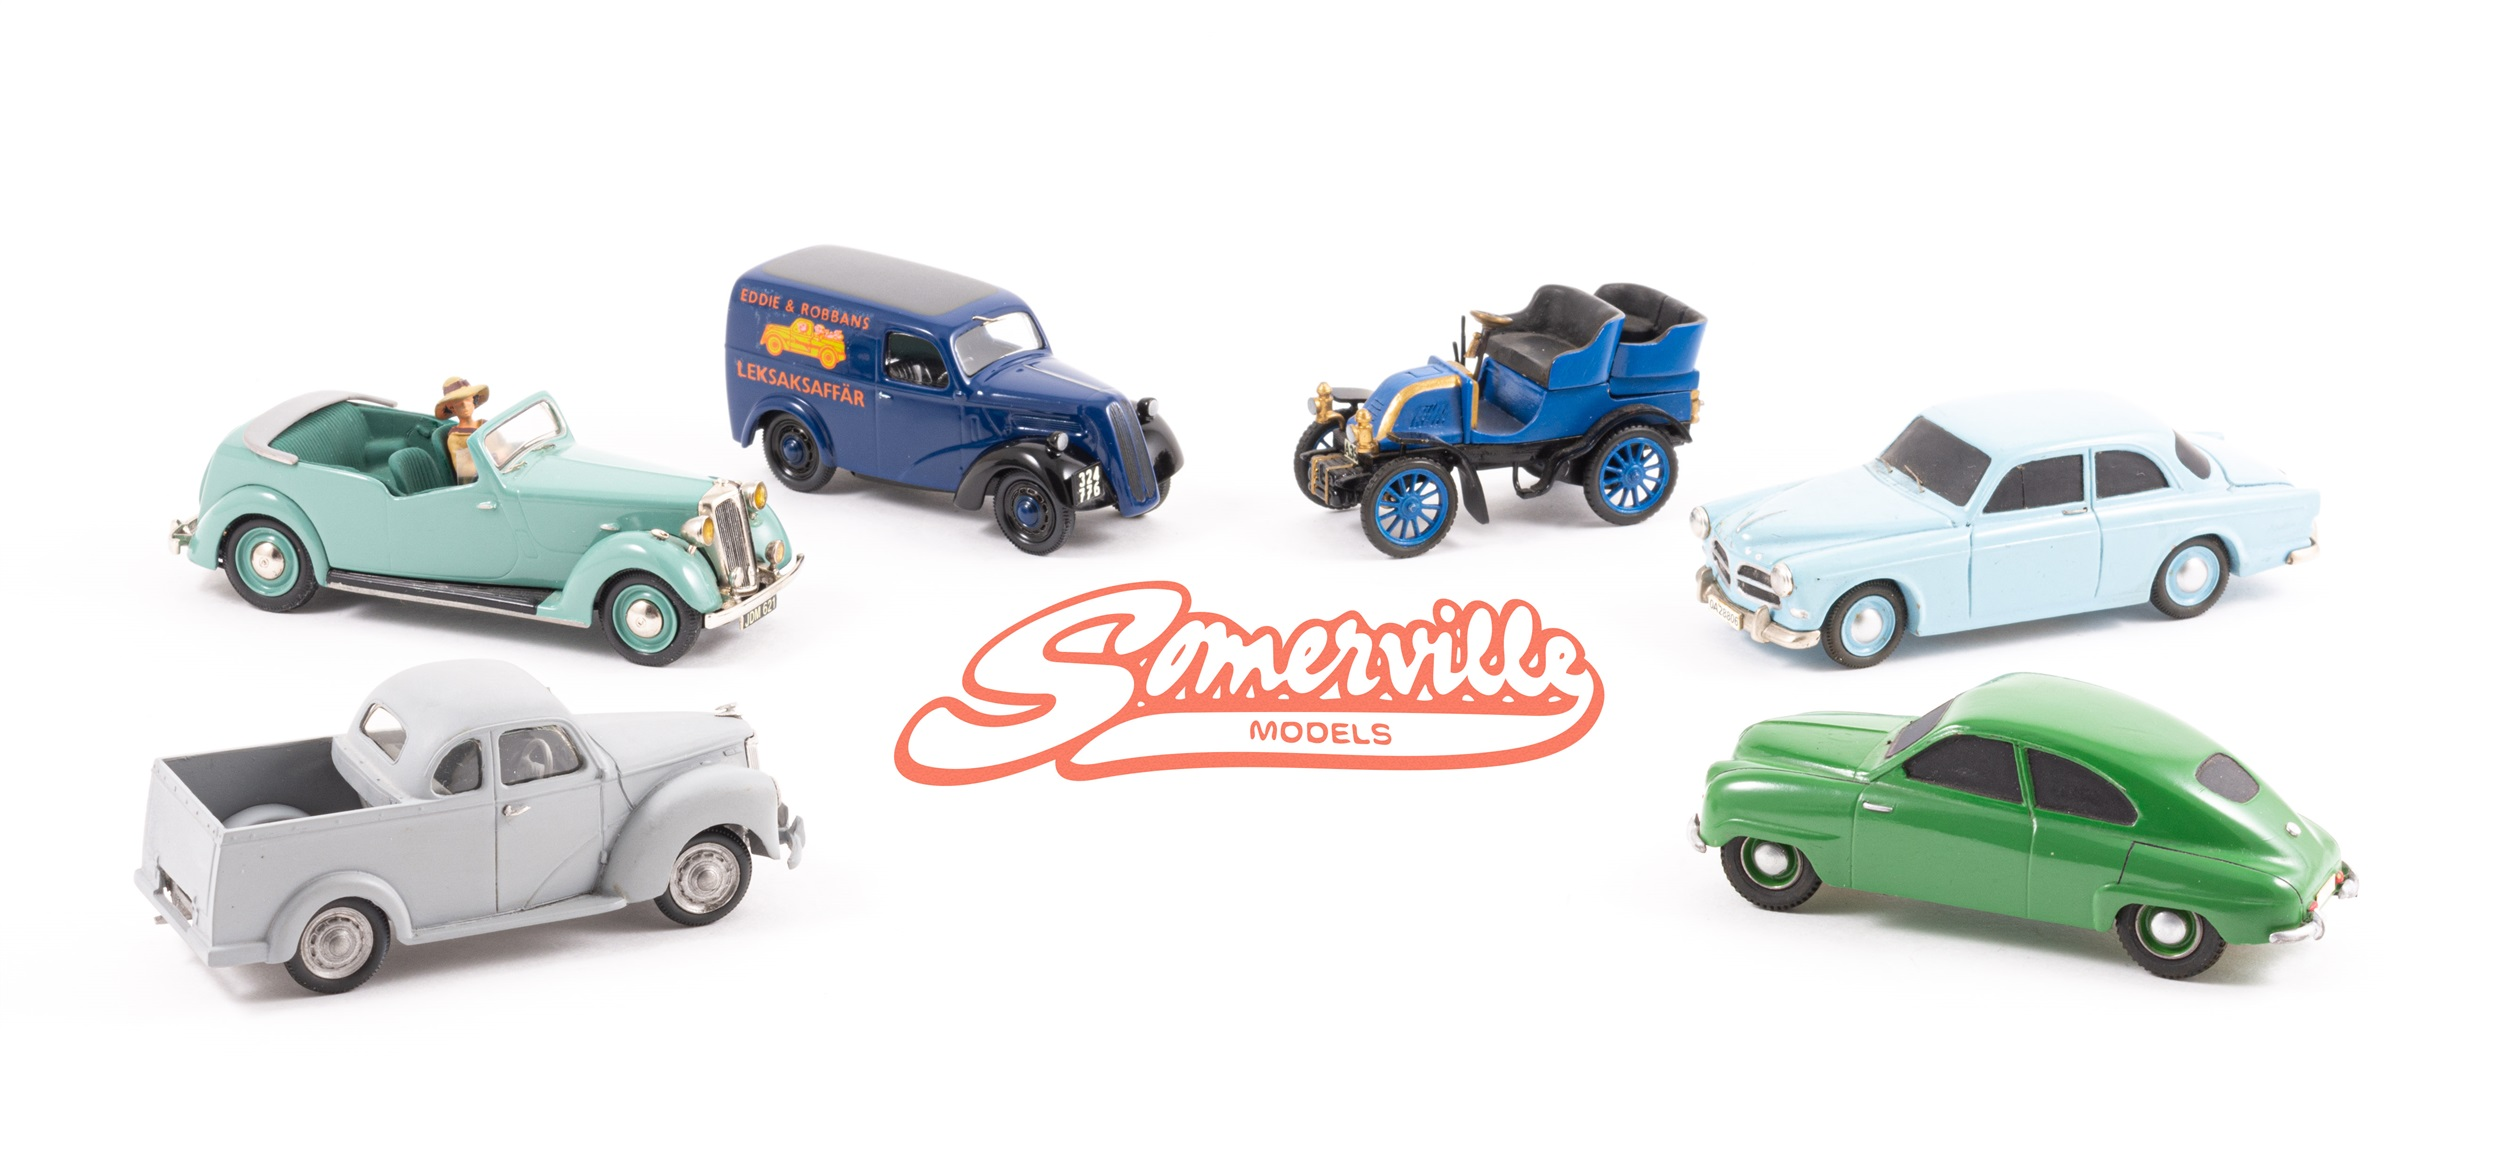 Personal Collection of Somerville Models Founder Features in November